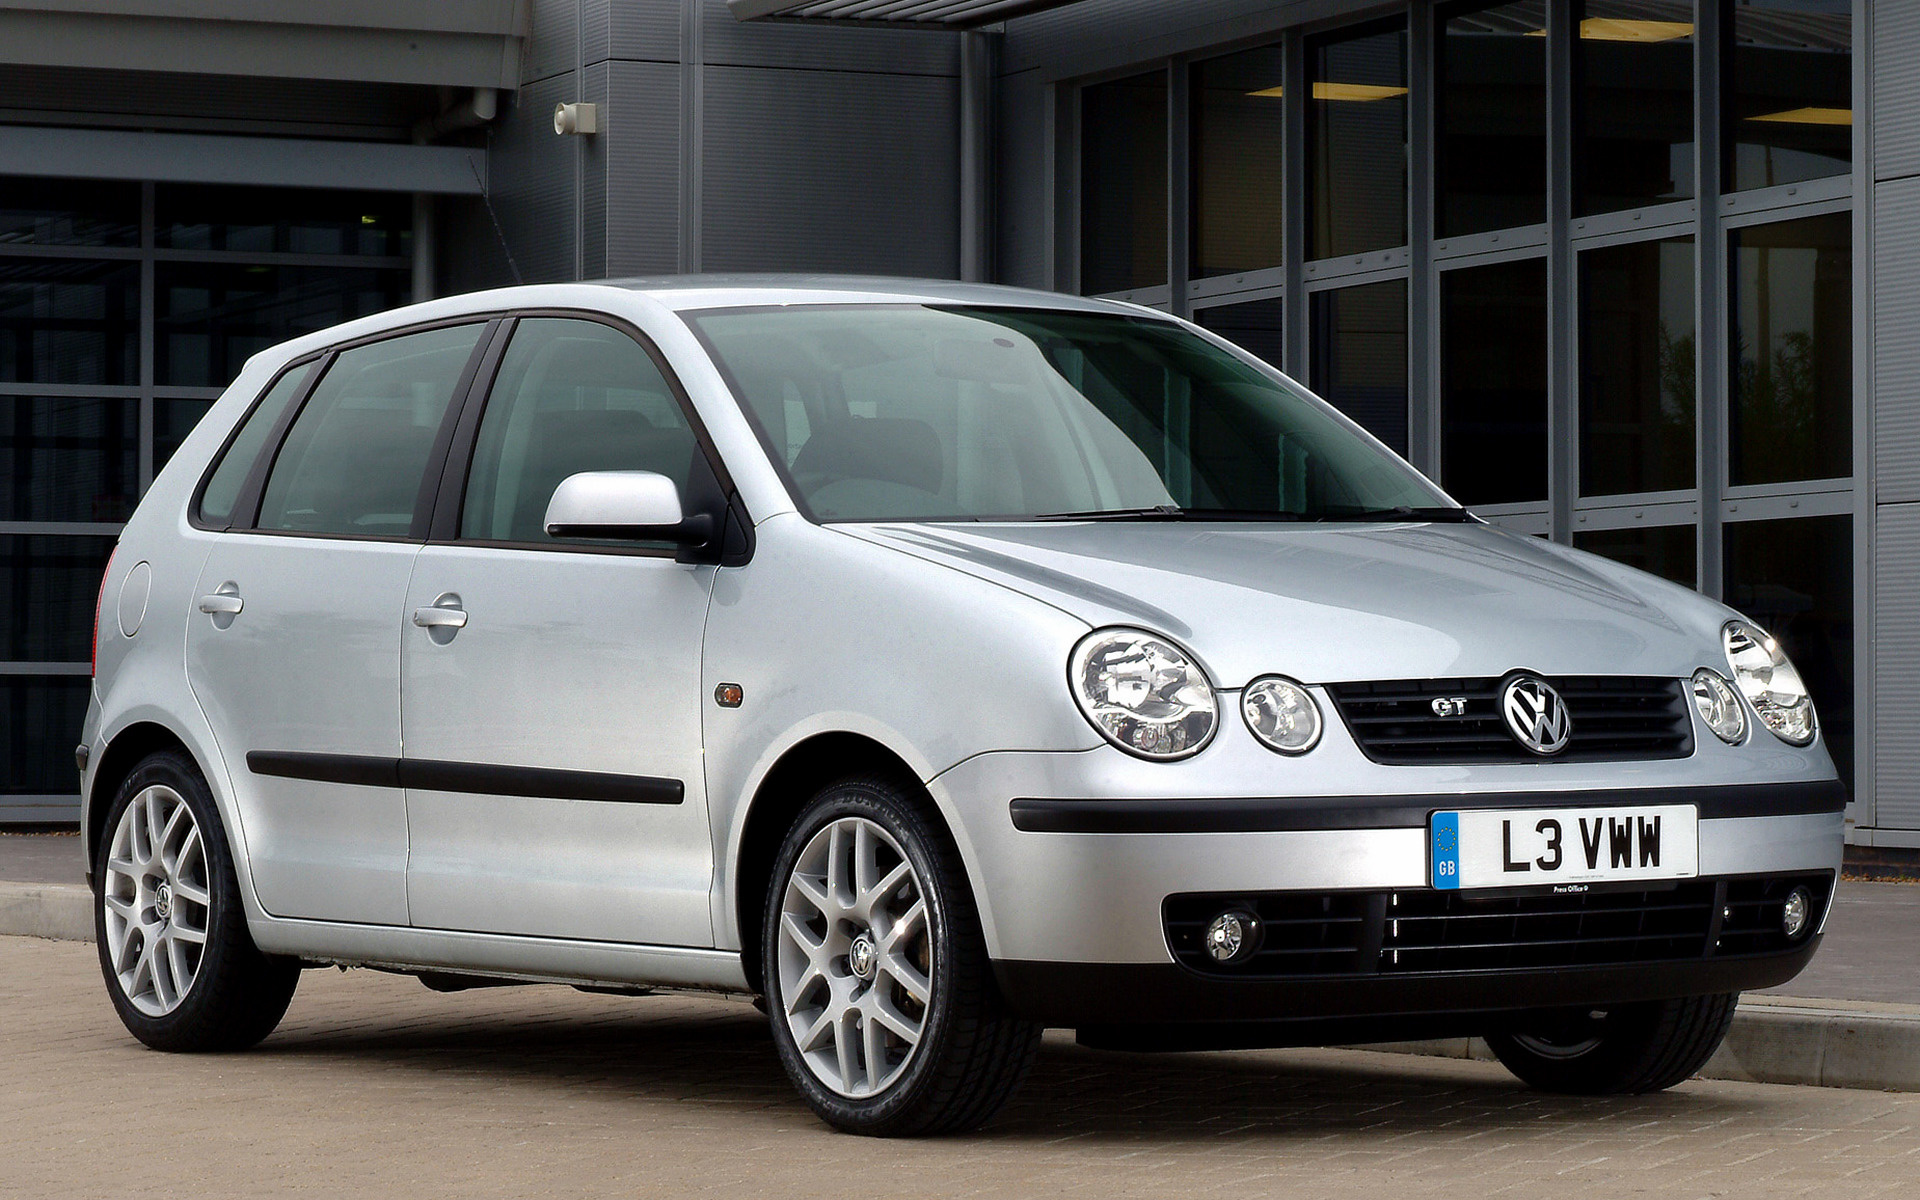 2004 Volkswagen Polo Gt 5 Door Uk Wallpapers And Hd